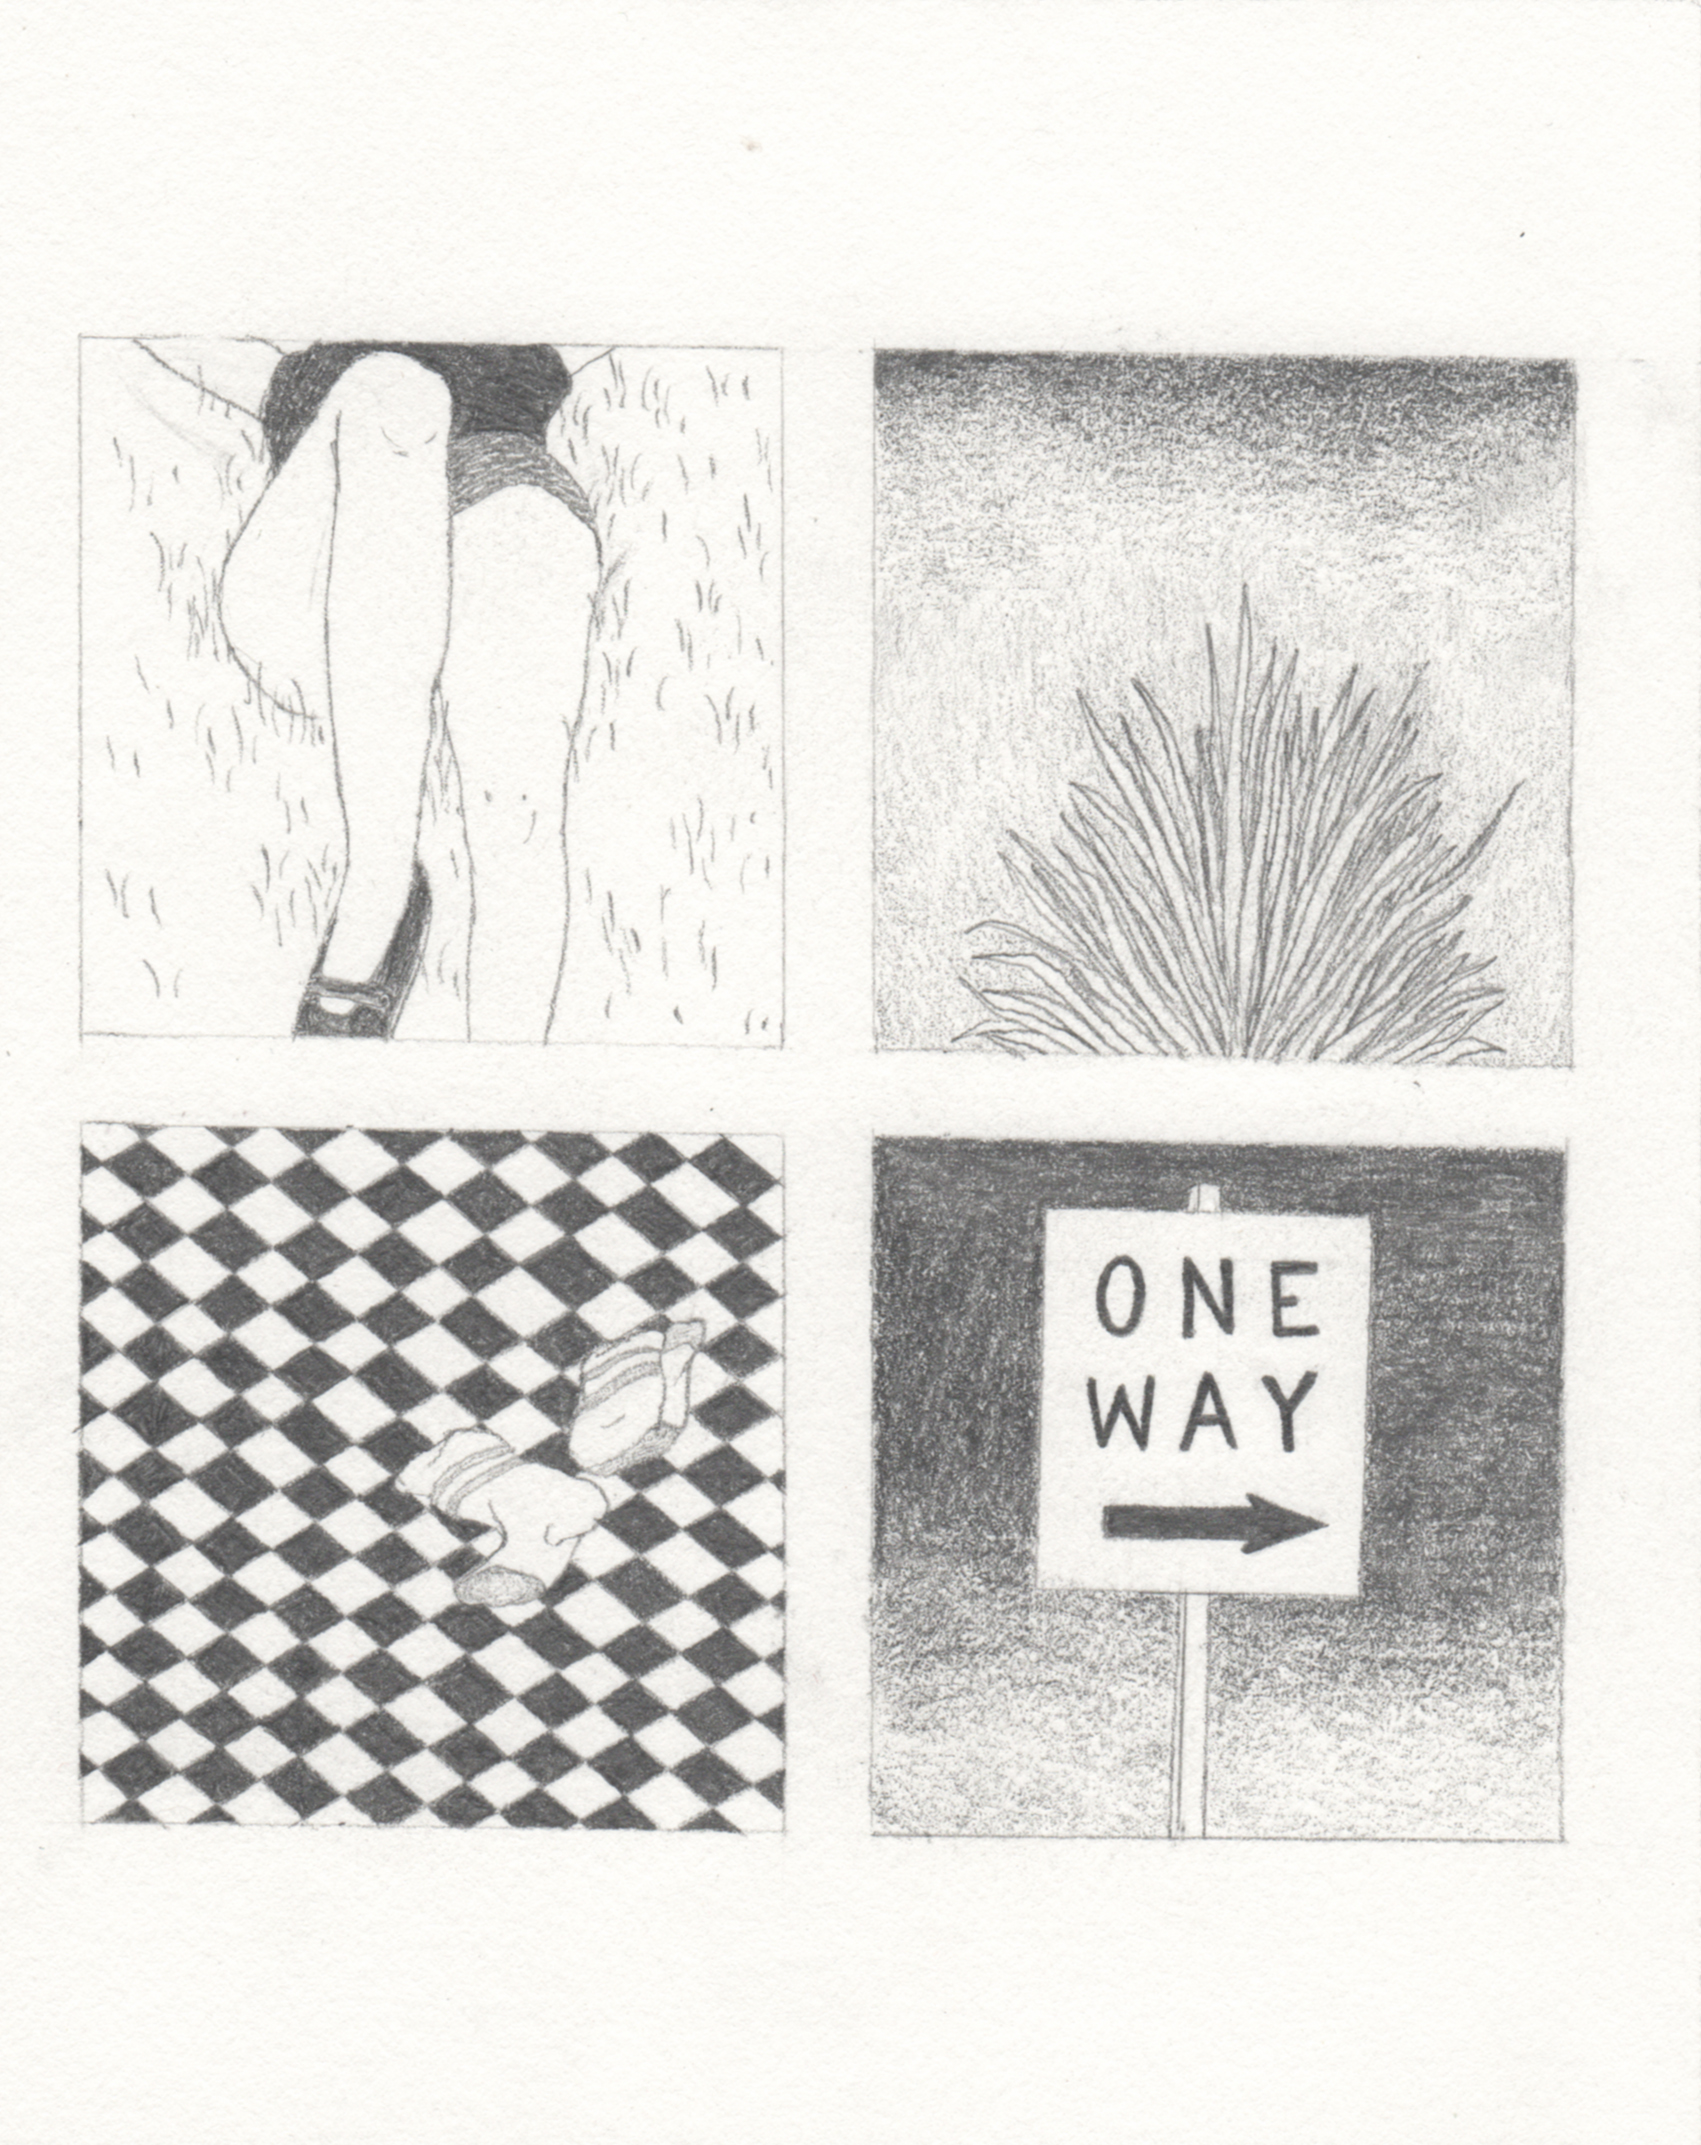 One way | GALERIE TREIZE-DIX I AUTRE JE | Sarah Beth Schneider / One way